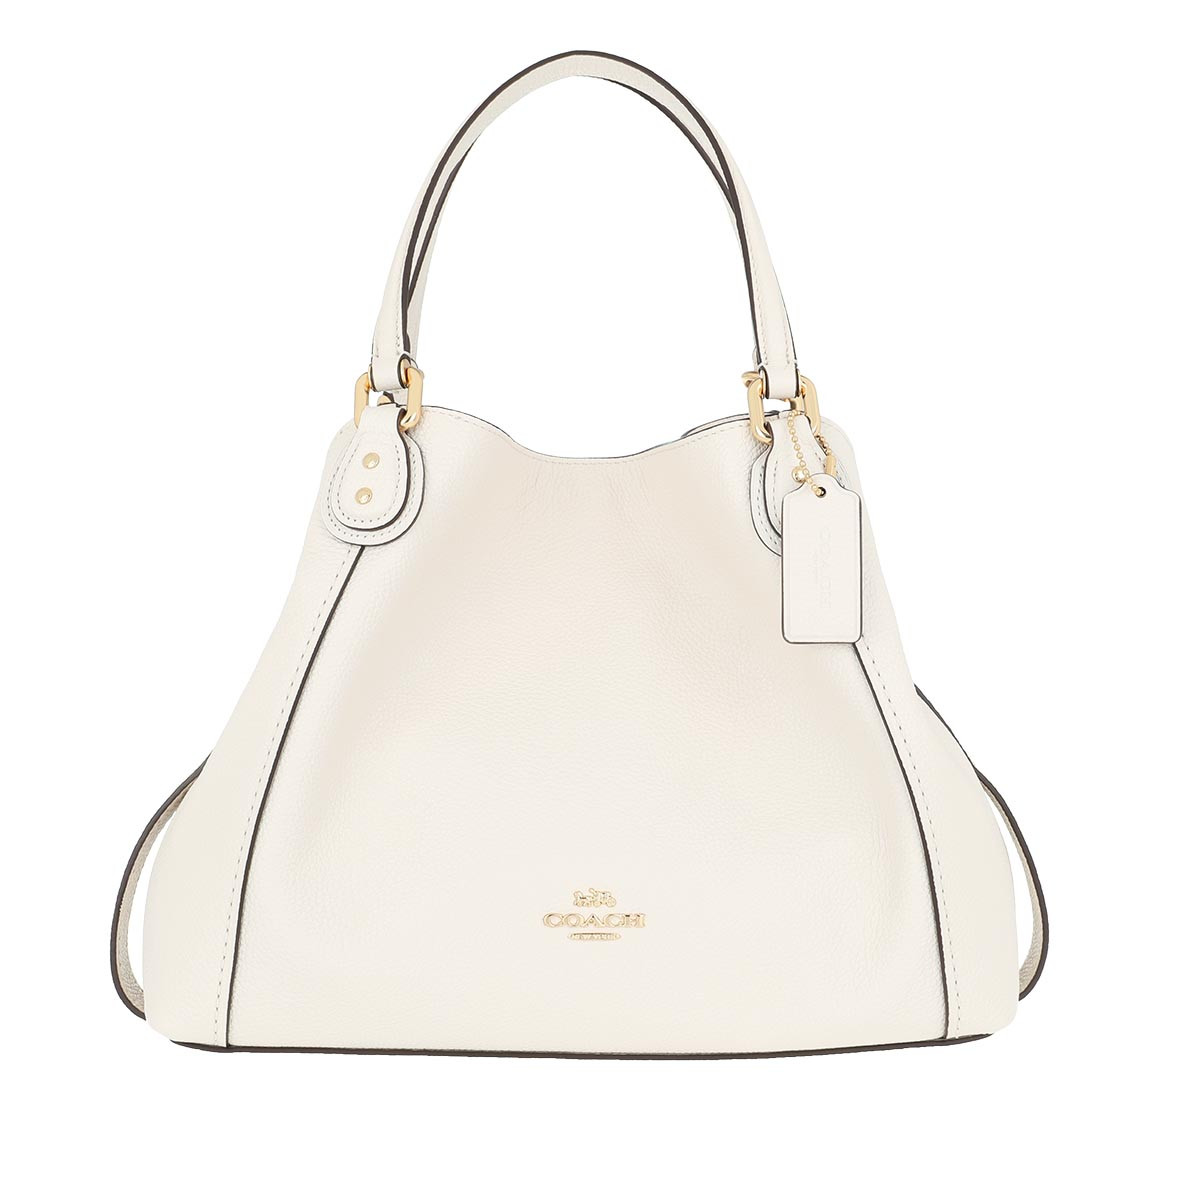 Coach Tote - Pebble Edie Shopping Bag Chalk - in weiß - für Damen